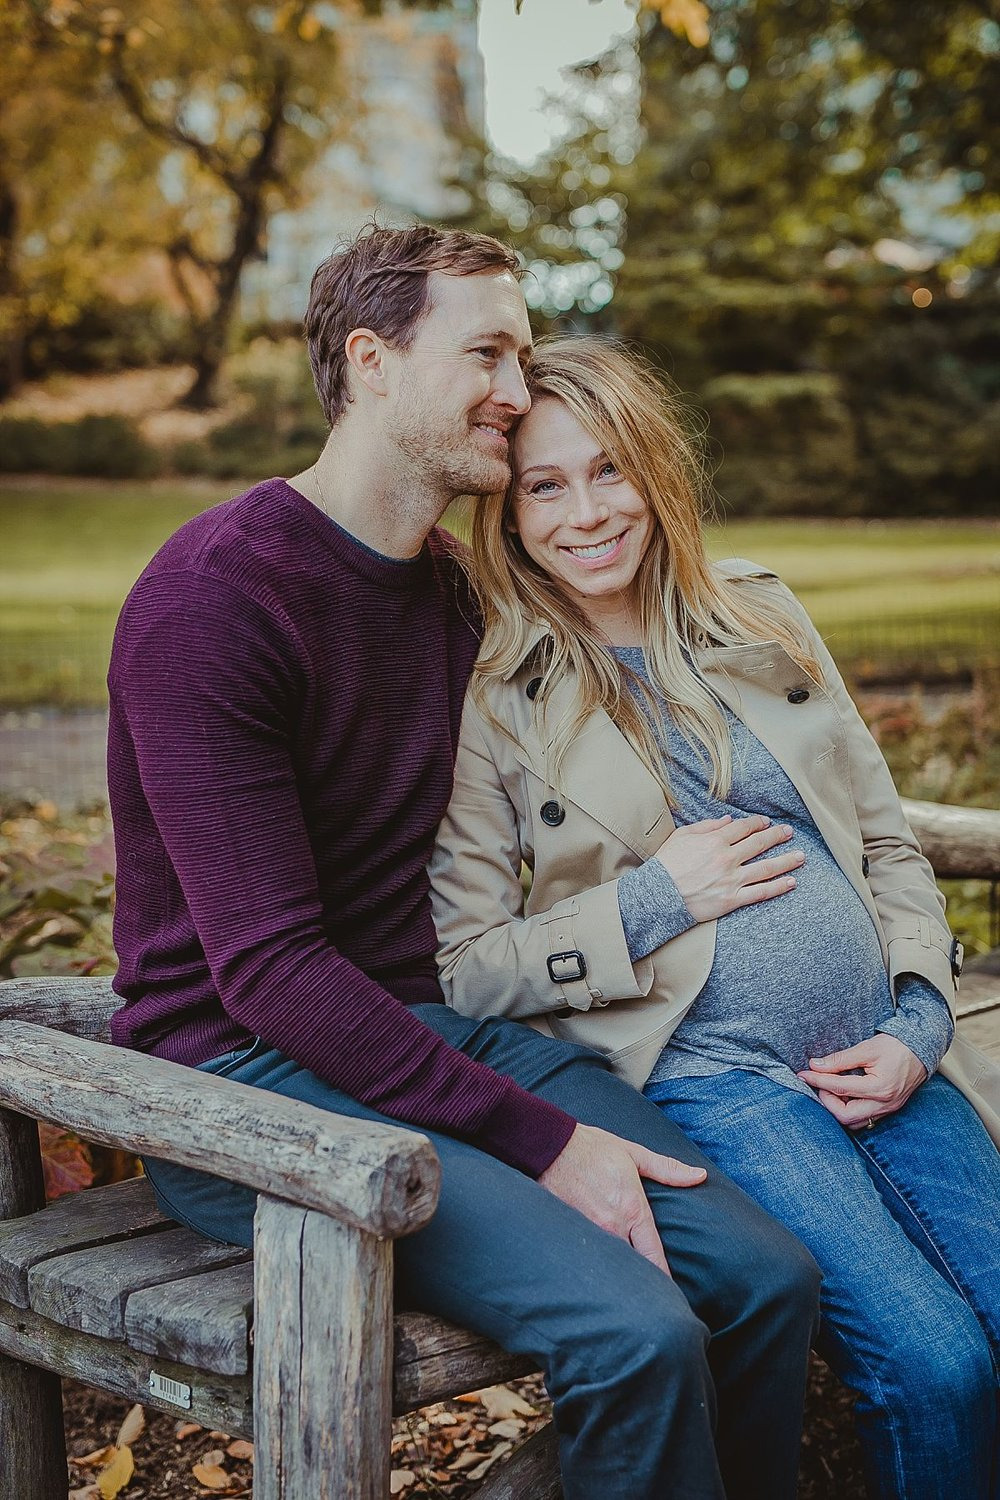 expecting couple sitting in in front of pond on sunny morning in central park nyc. photographed by nyc maternity photograher krystil mcdowall